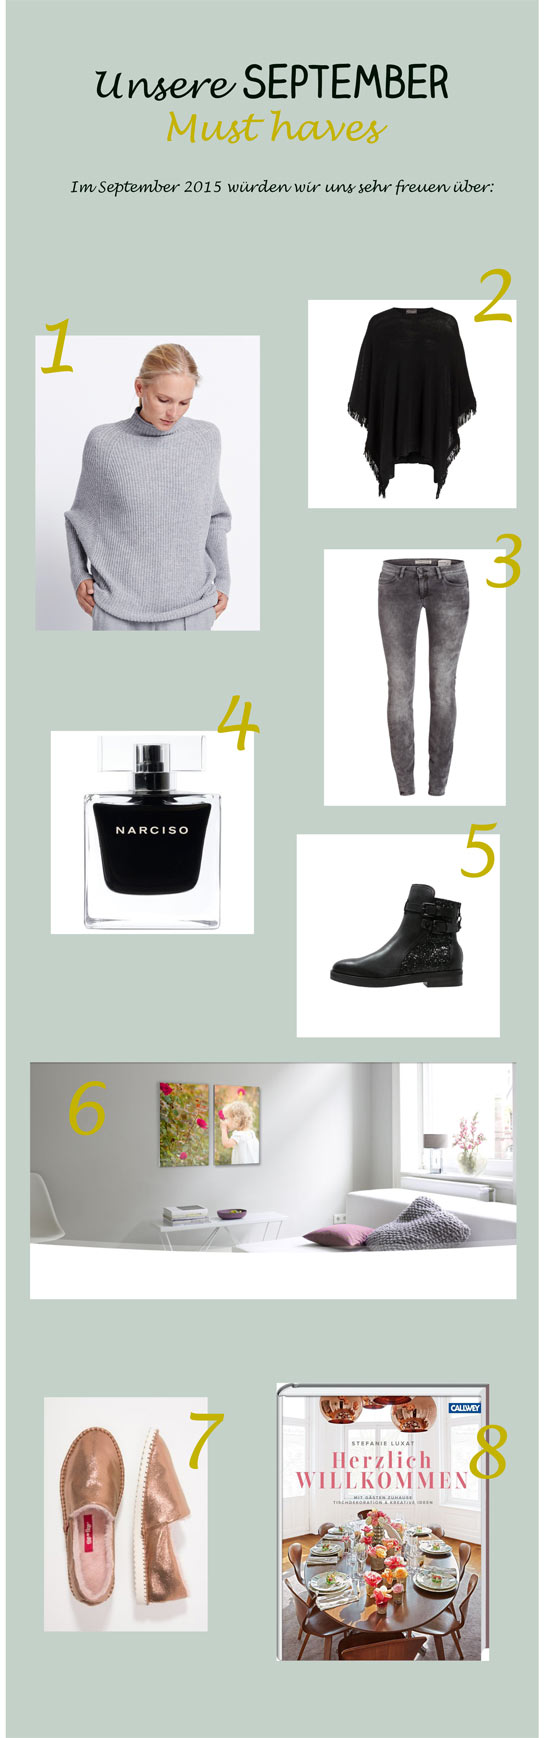 September-Must-haves-2015